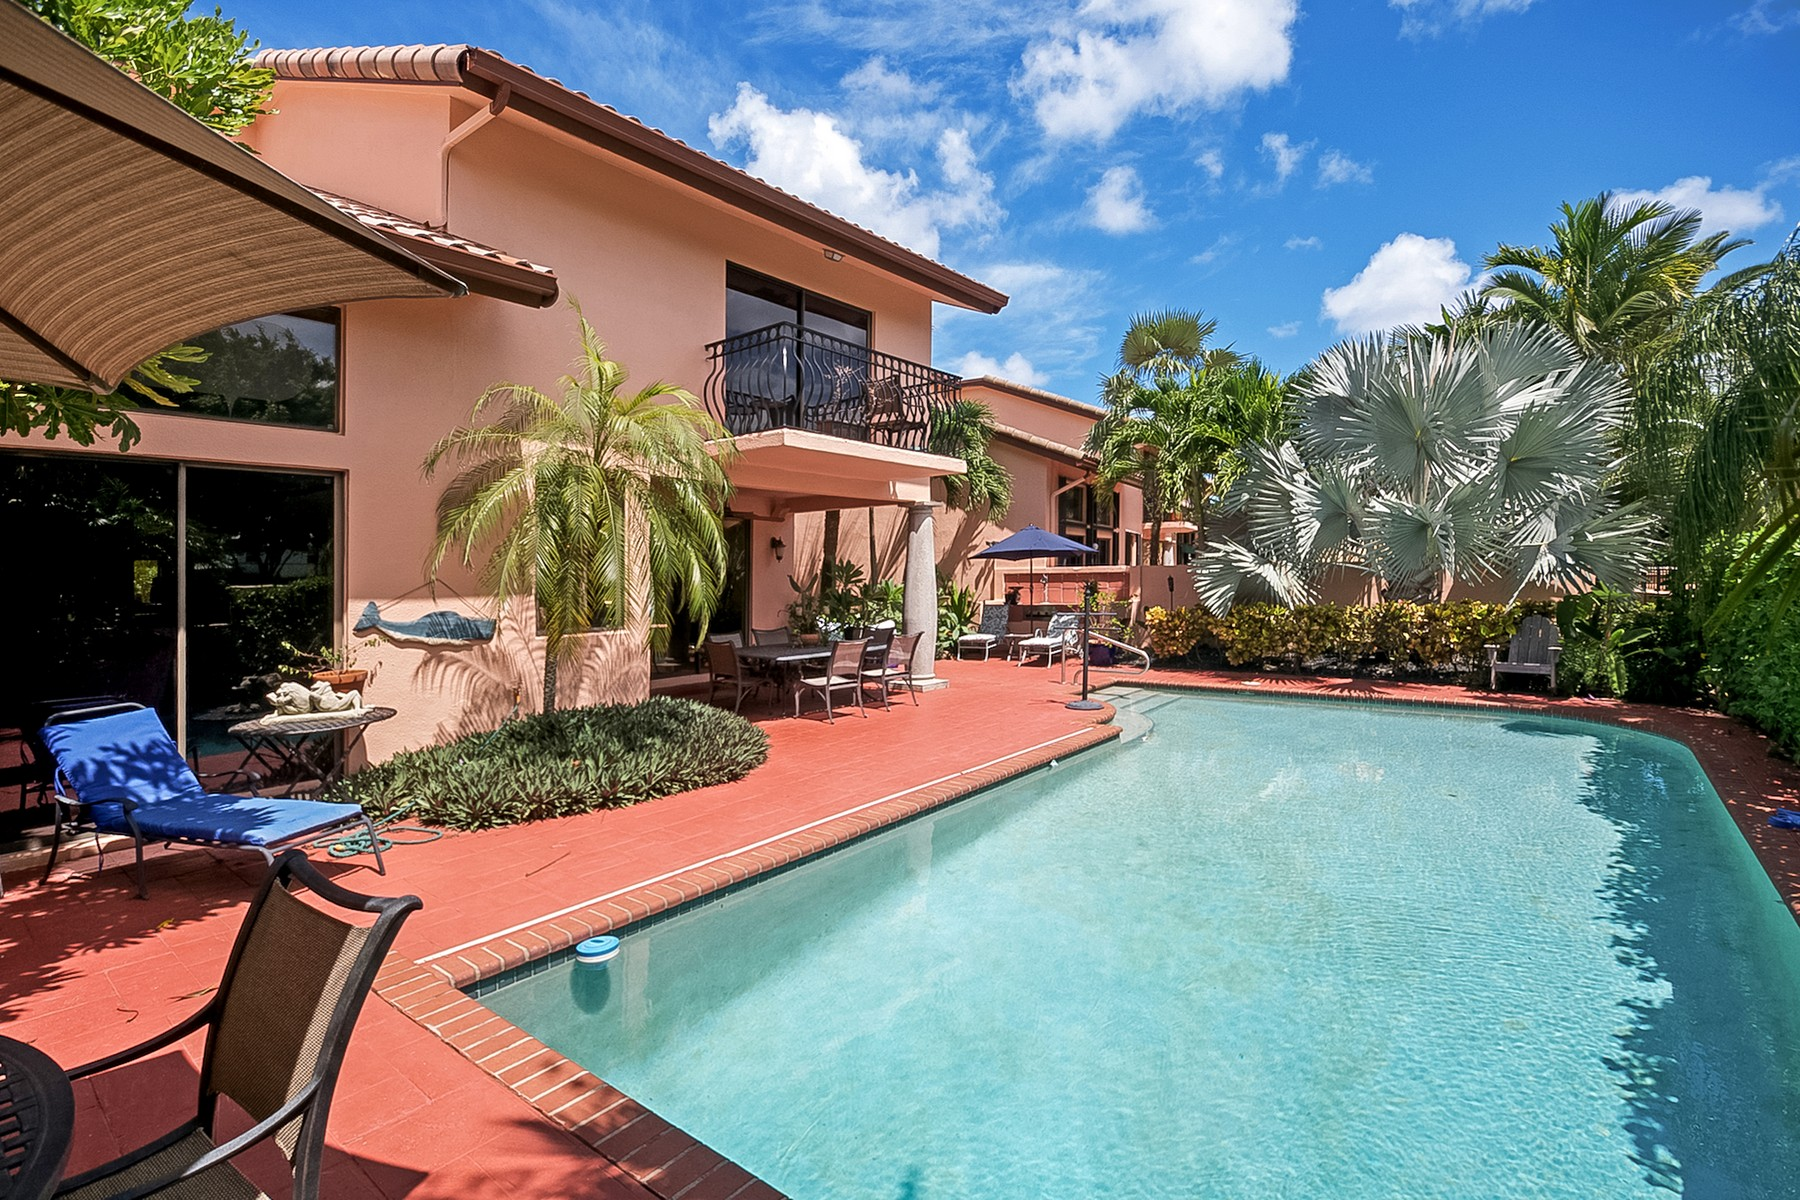 Single Family Home for Sale at 6532 Via Rosa , Boca Raton, FL 33433 6532 Via Rosa Boca Raton, Florida, 33433 United States